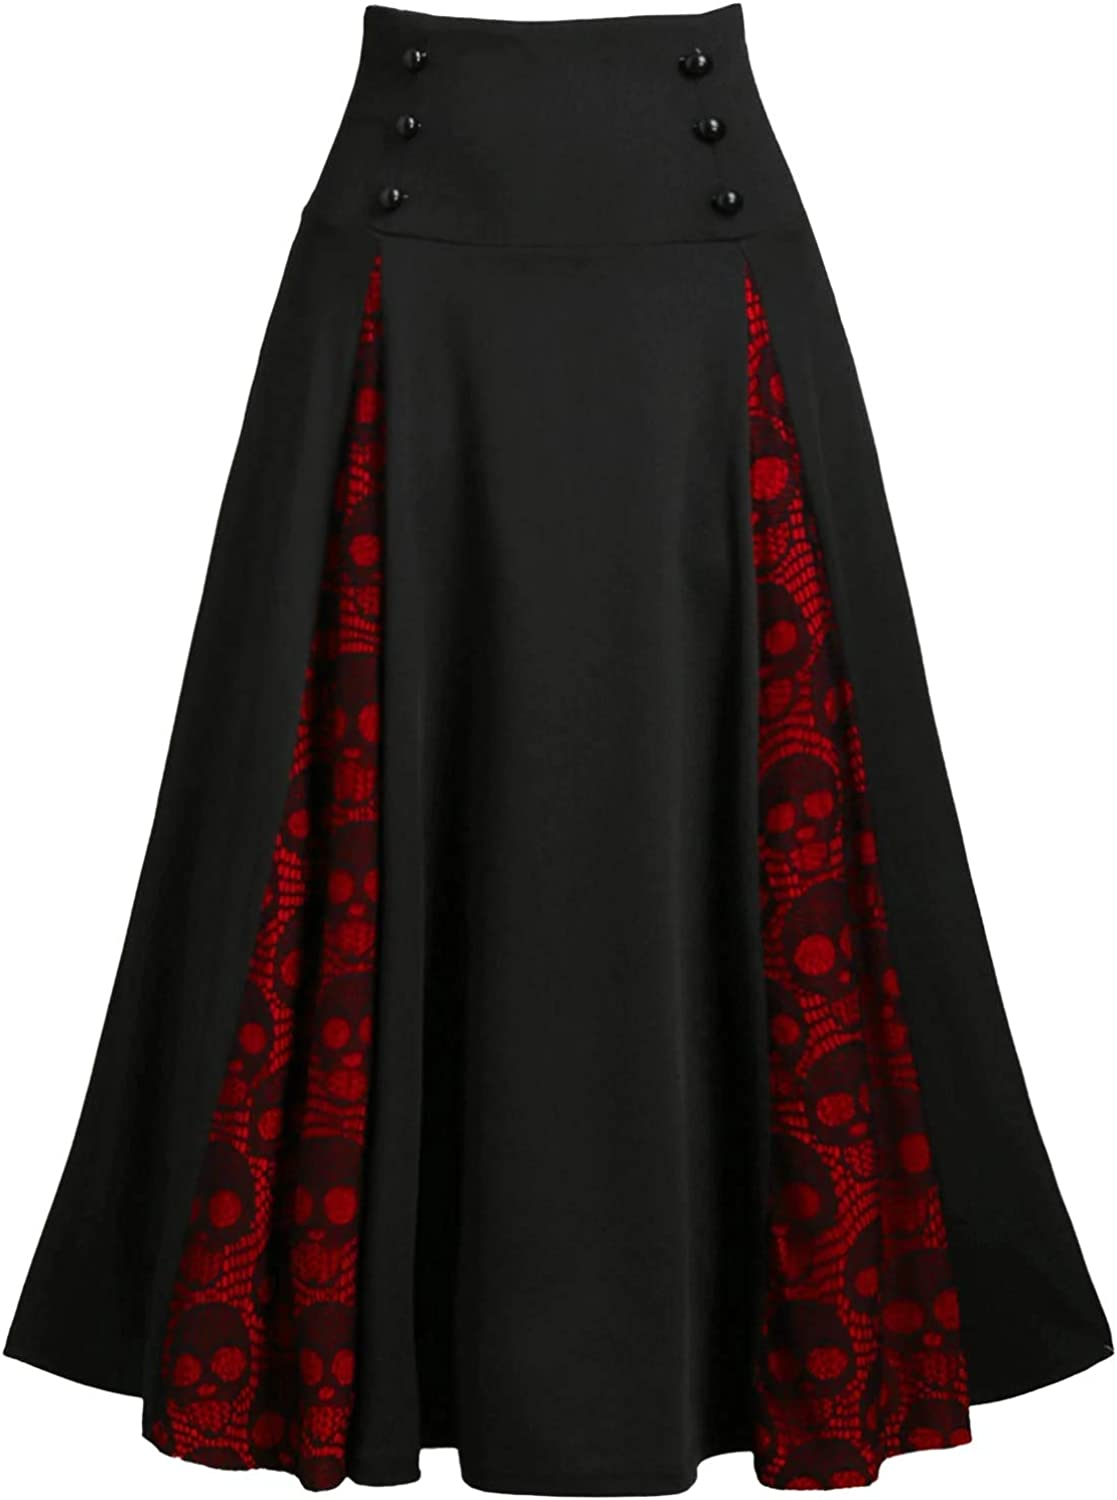 Nihsatin Womens Double Breasted Gothic Punk Midi Skirt Skull Lace Insert Lace-up Skirt